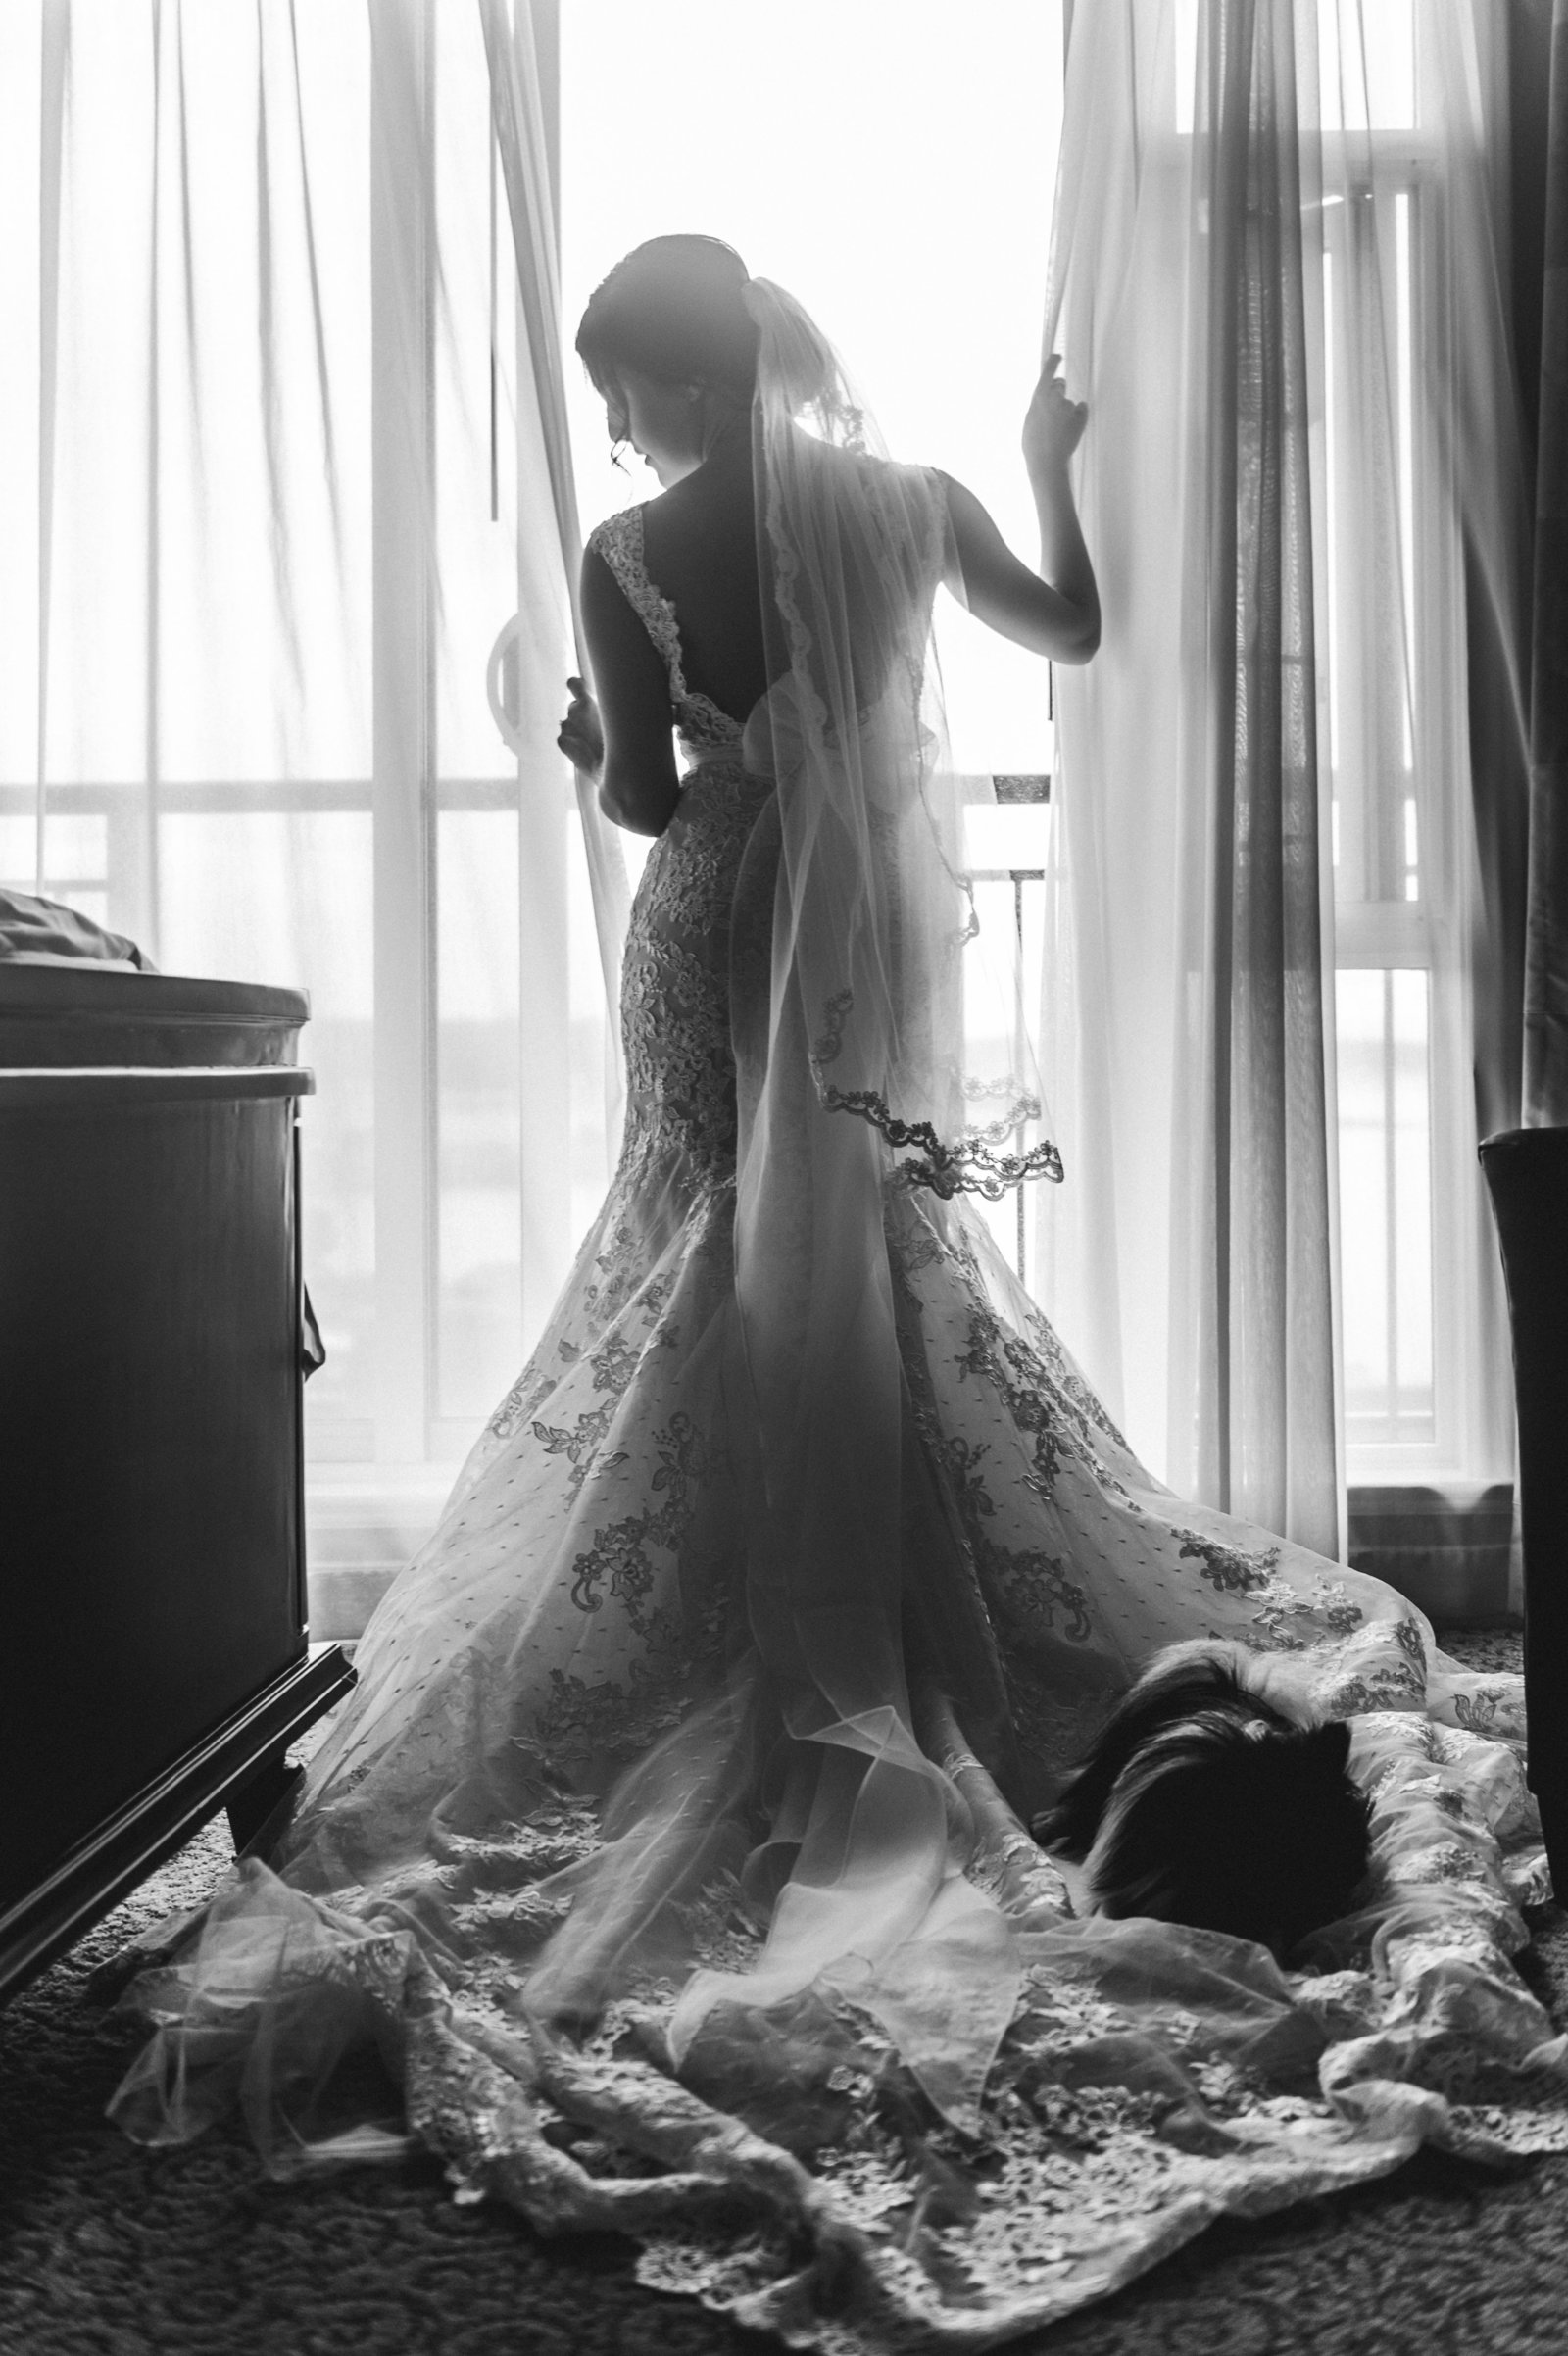 Artistic-Wedding-Photographer-31